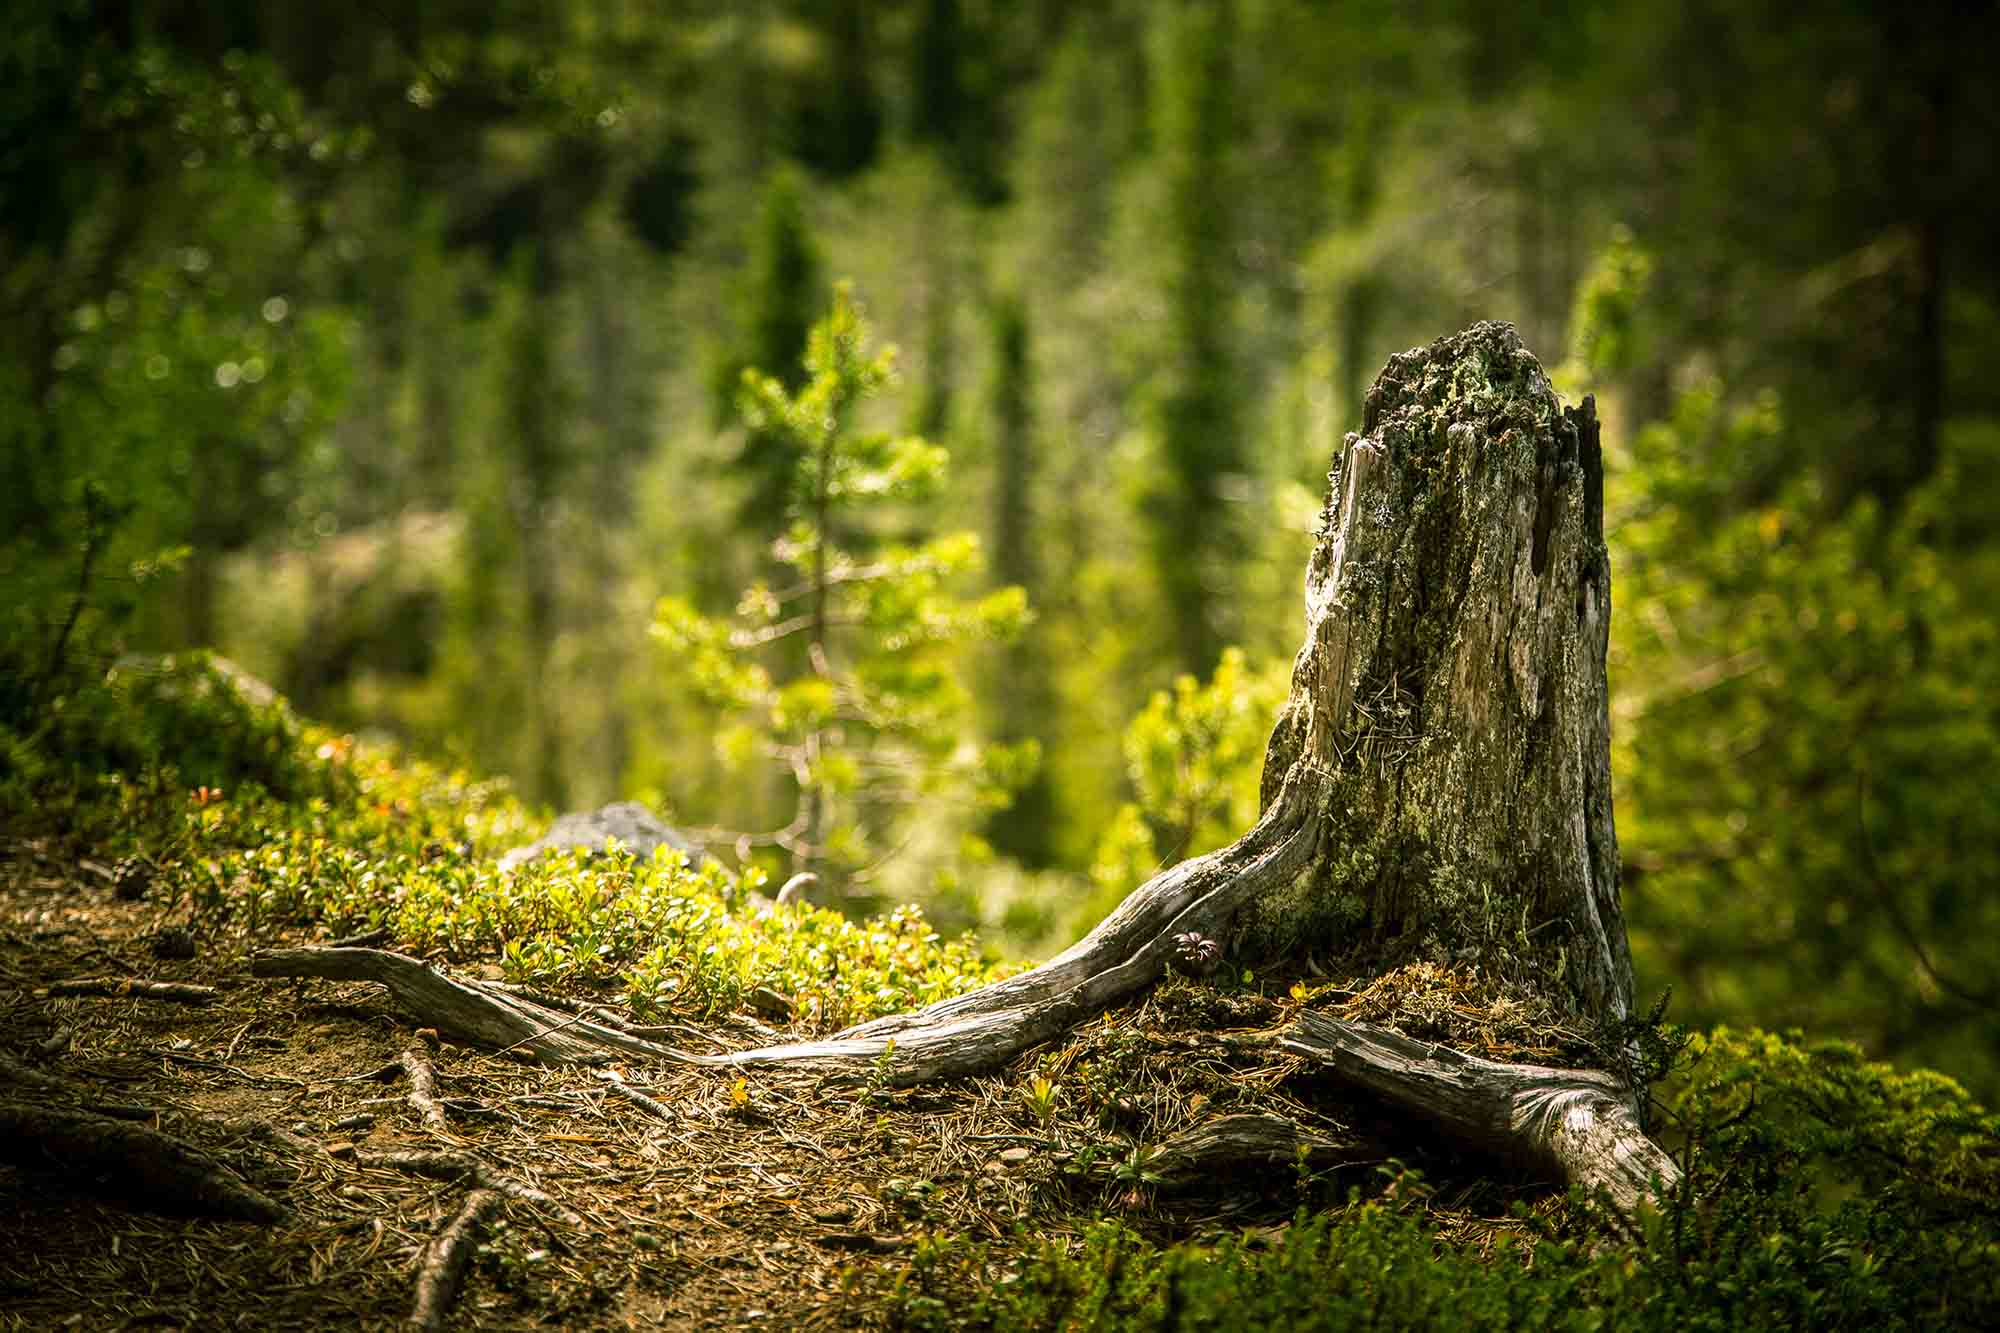 stump in a forest landscape